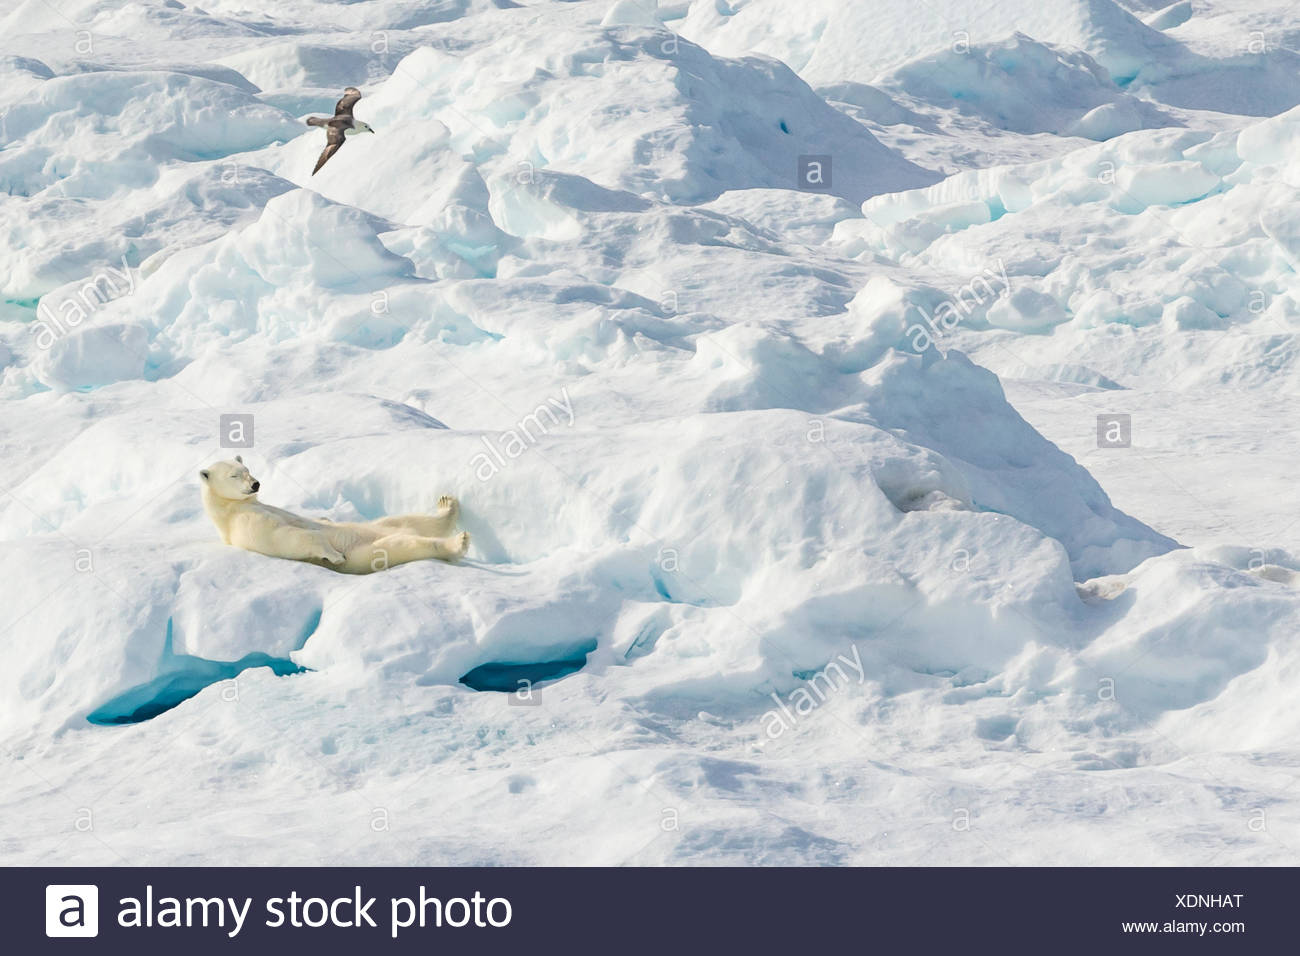 A laid back polar bear (Ursus maritimus) resting on an ice floe in the Canadian Arctic. Stock Photo